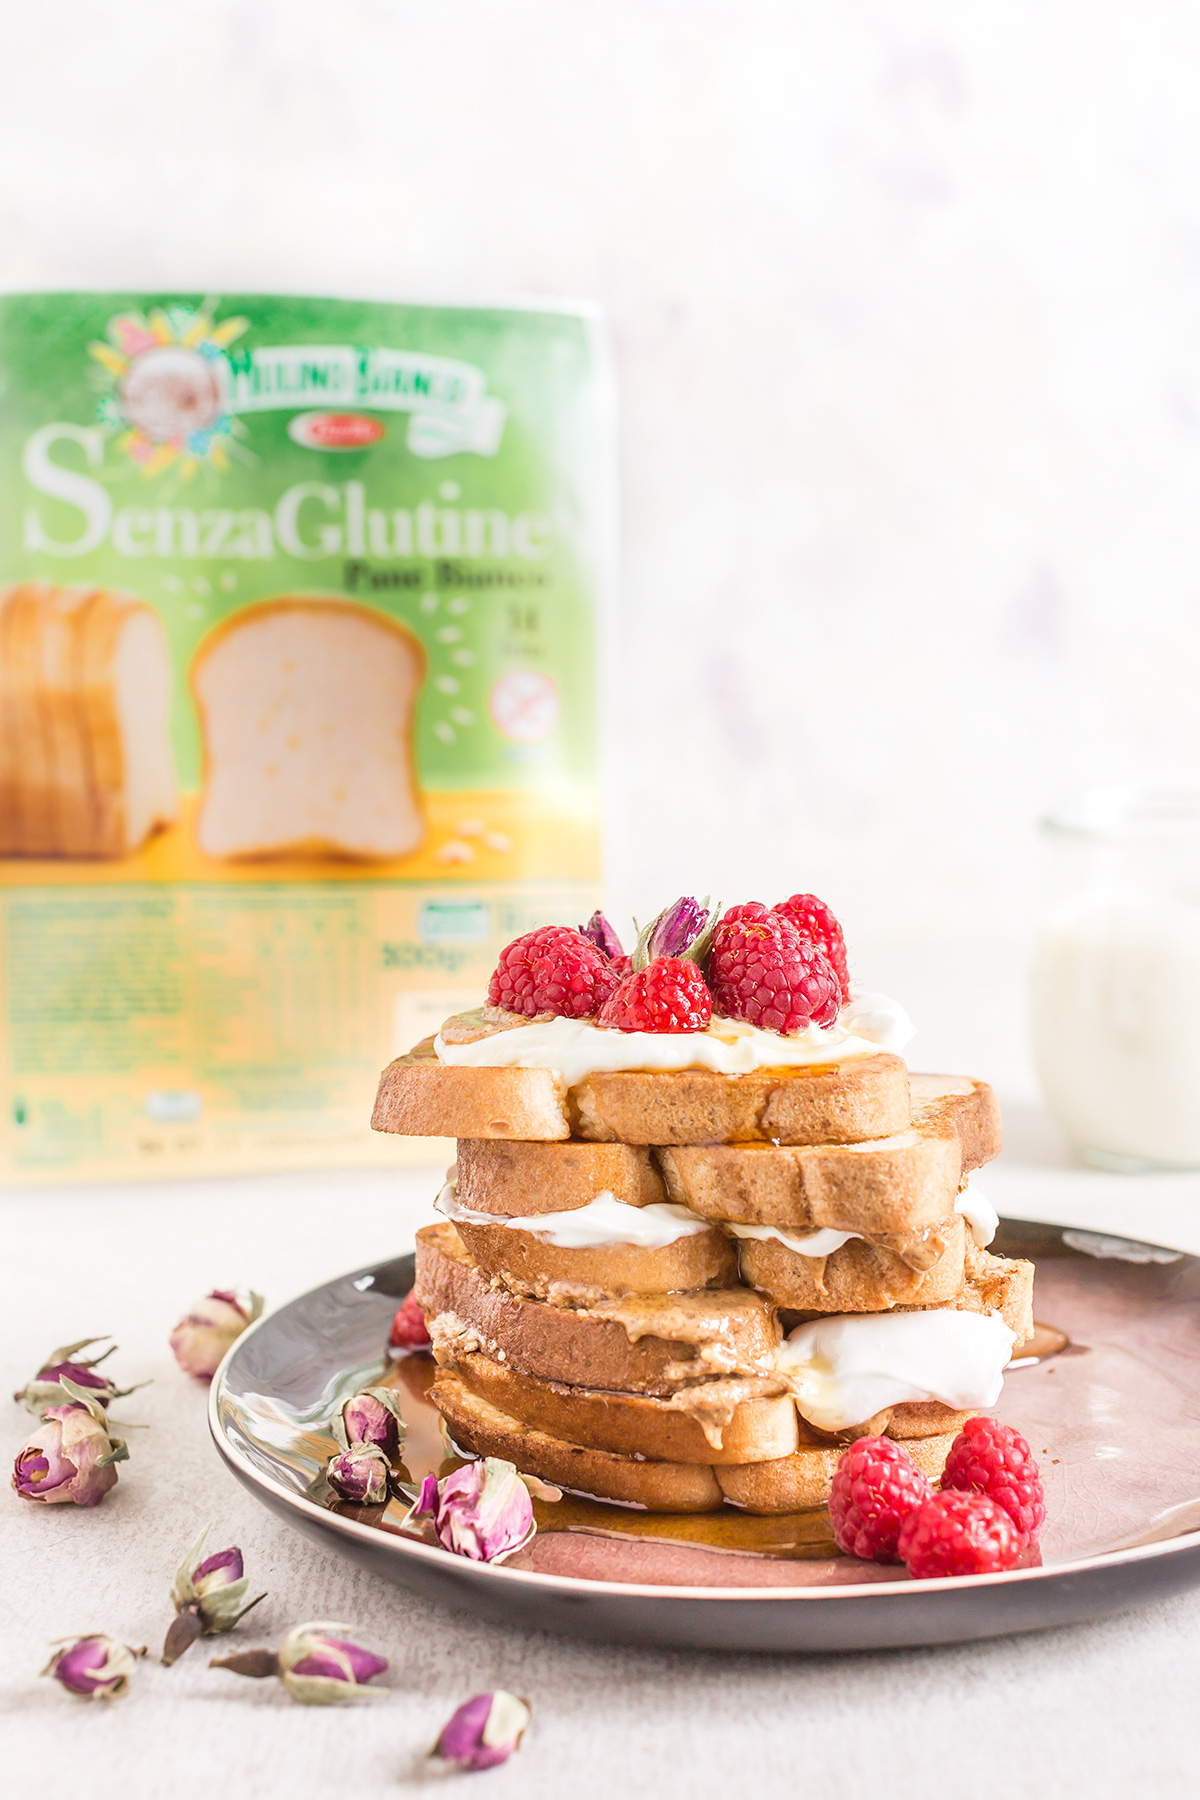 #VEGAN #glutenfree FRENCH TOAST recipe with vanilla and coconut whipped cream - ricetta FRENCH TOAST vegan senza glutine alla vaniglia